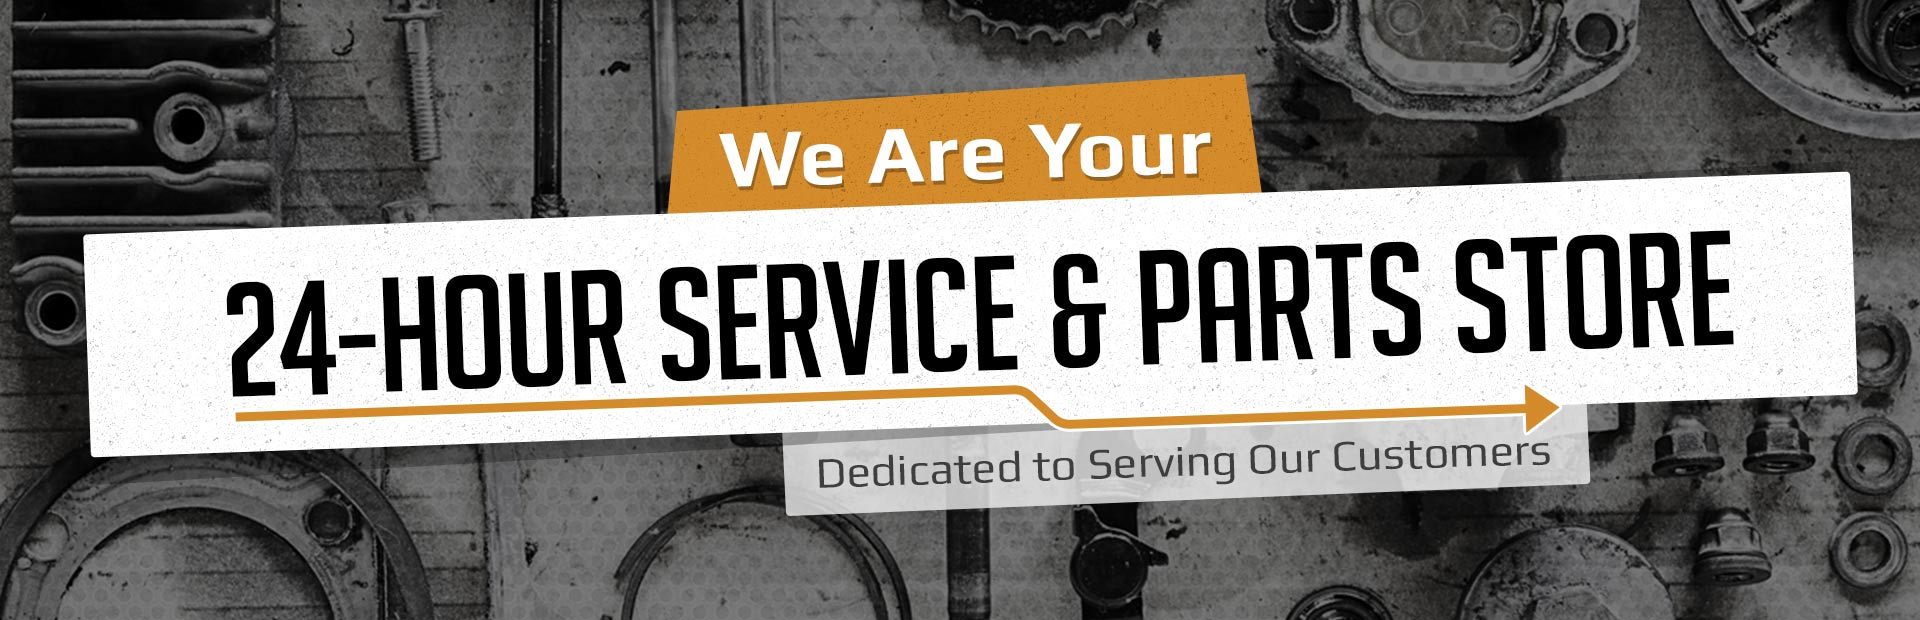 We are your 24-hour service and parts store!